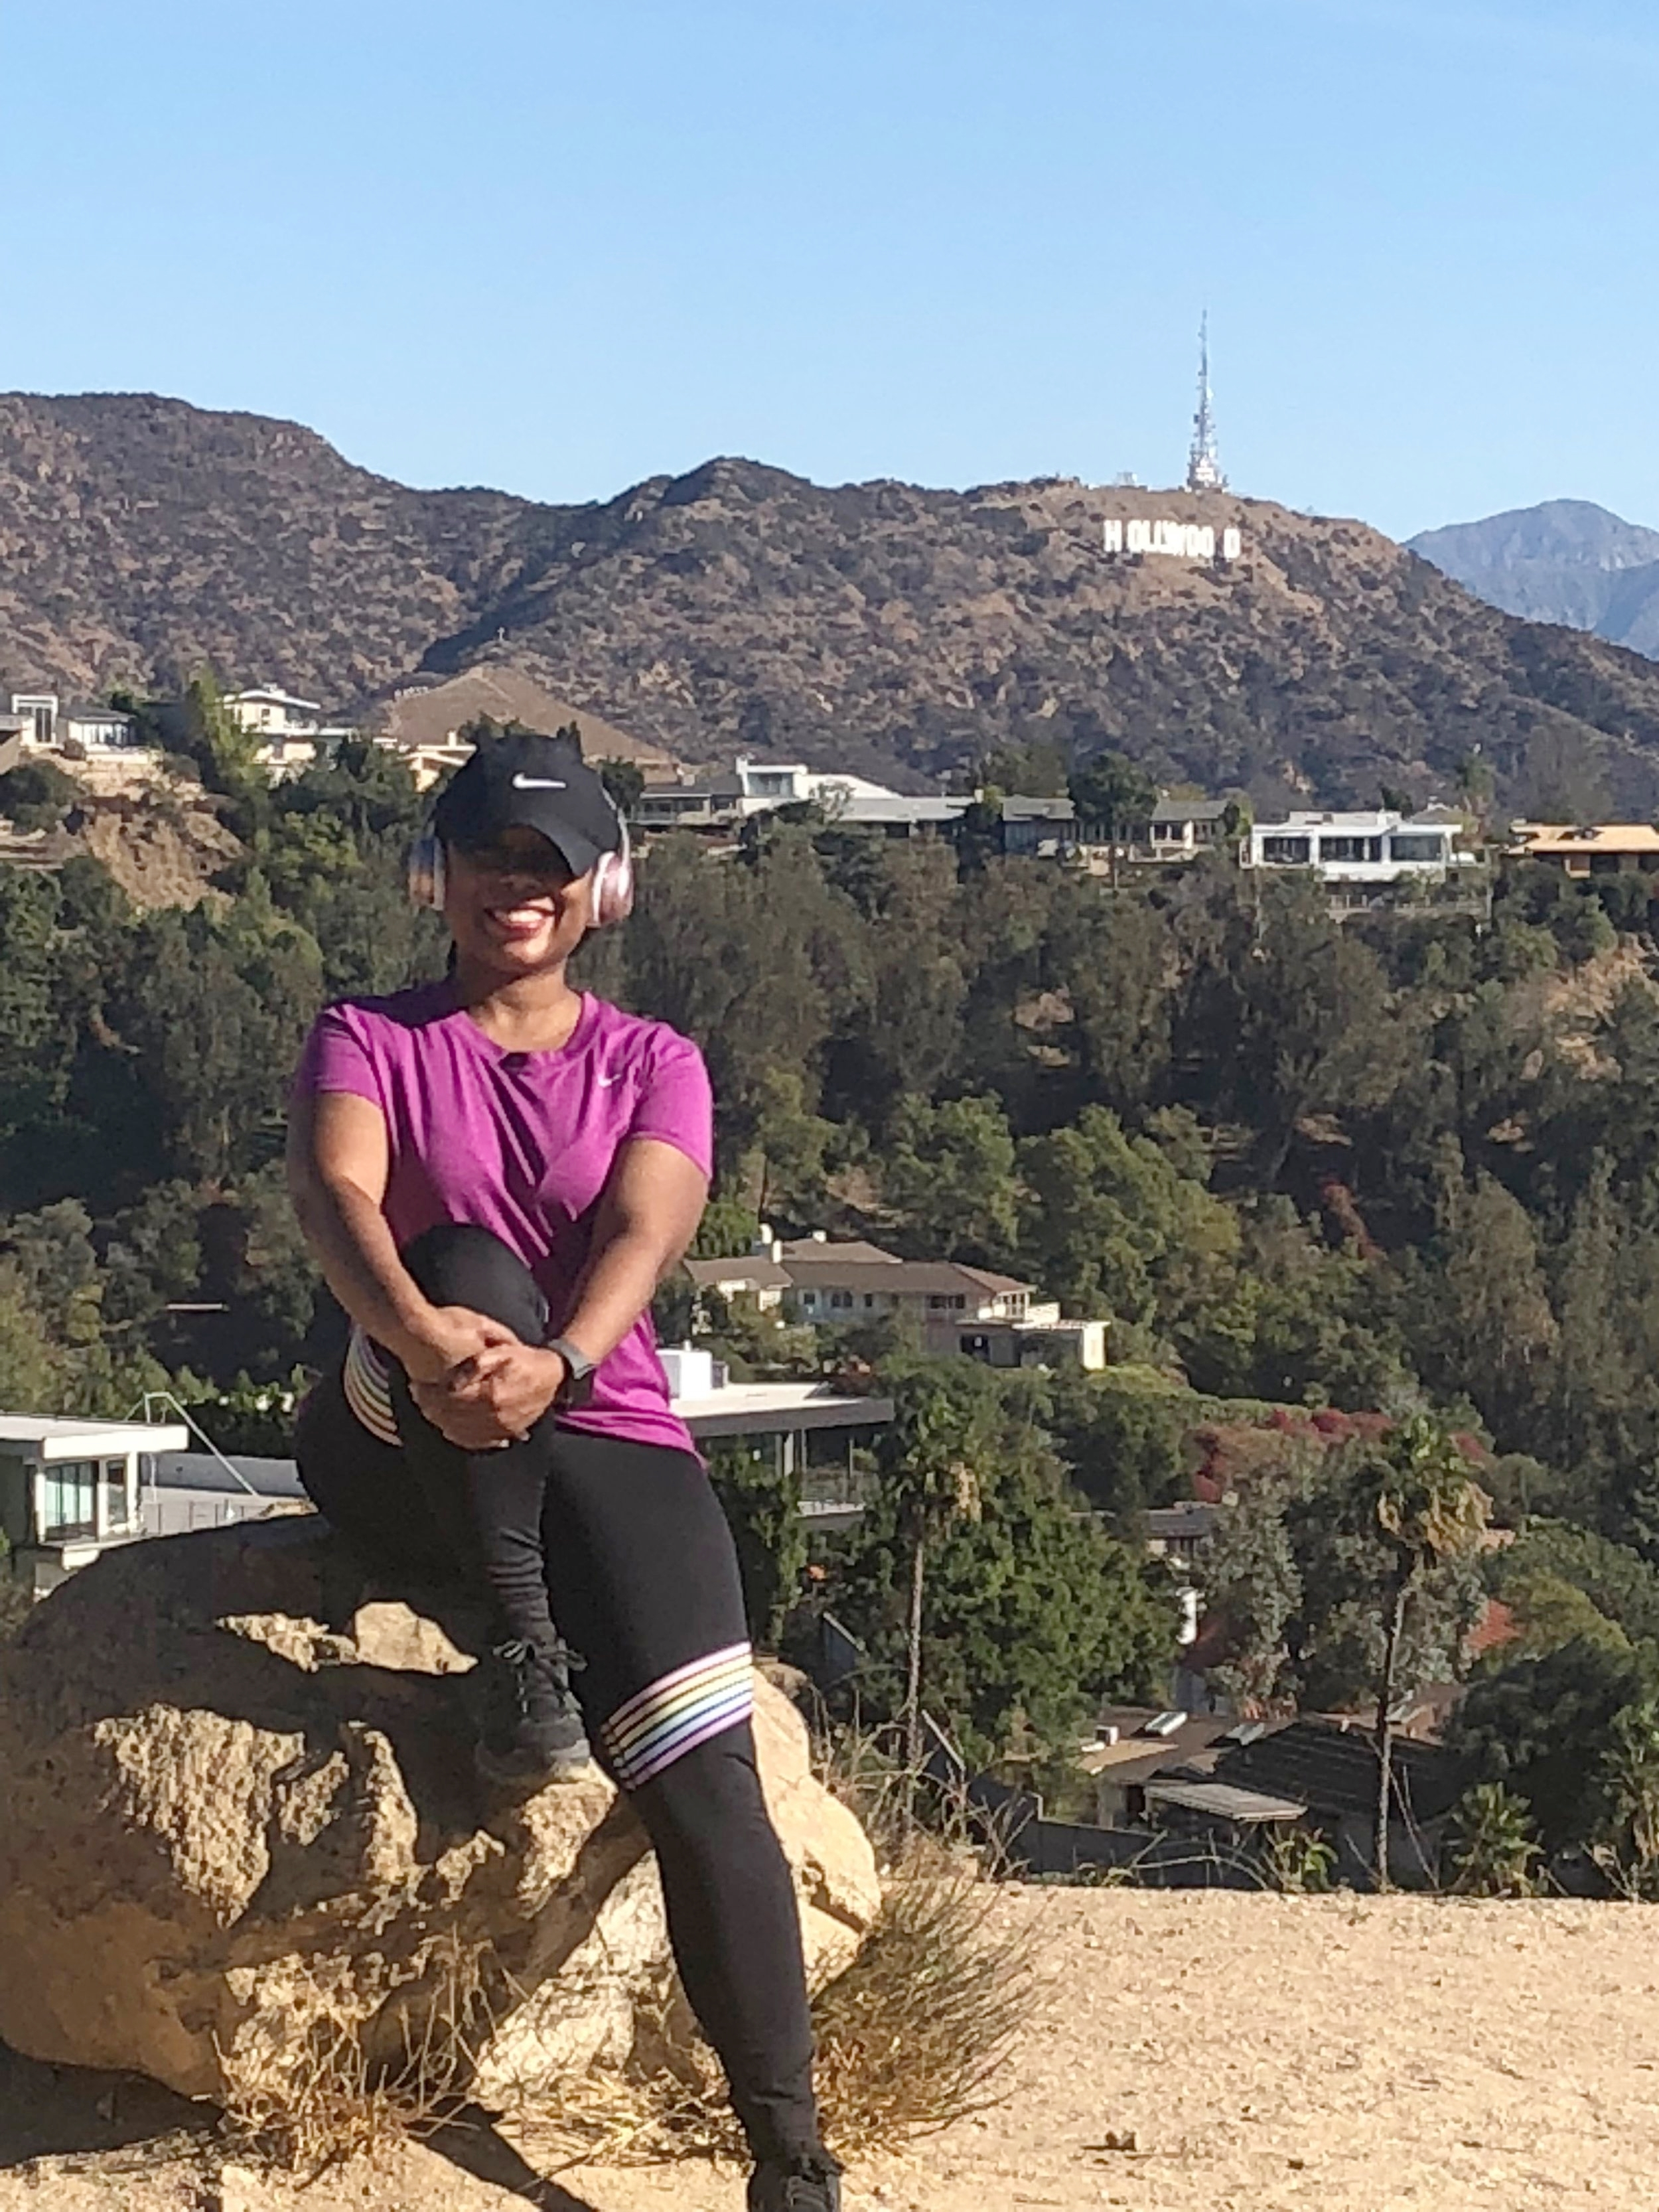 I am smiling because I was finally able to rest. Lol! We hiked over 8 miles and I was beat. Those hills were no joke!